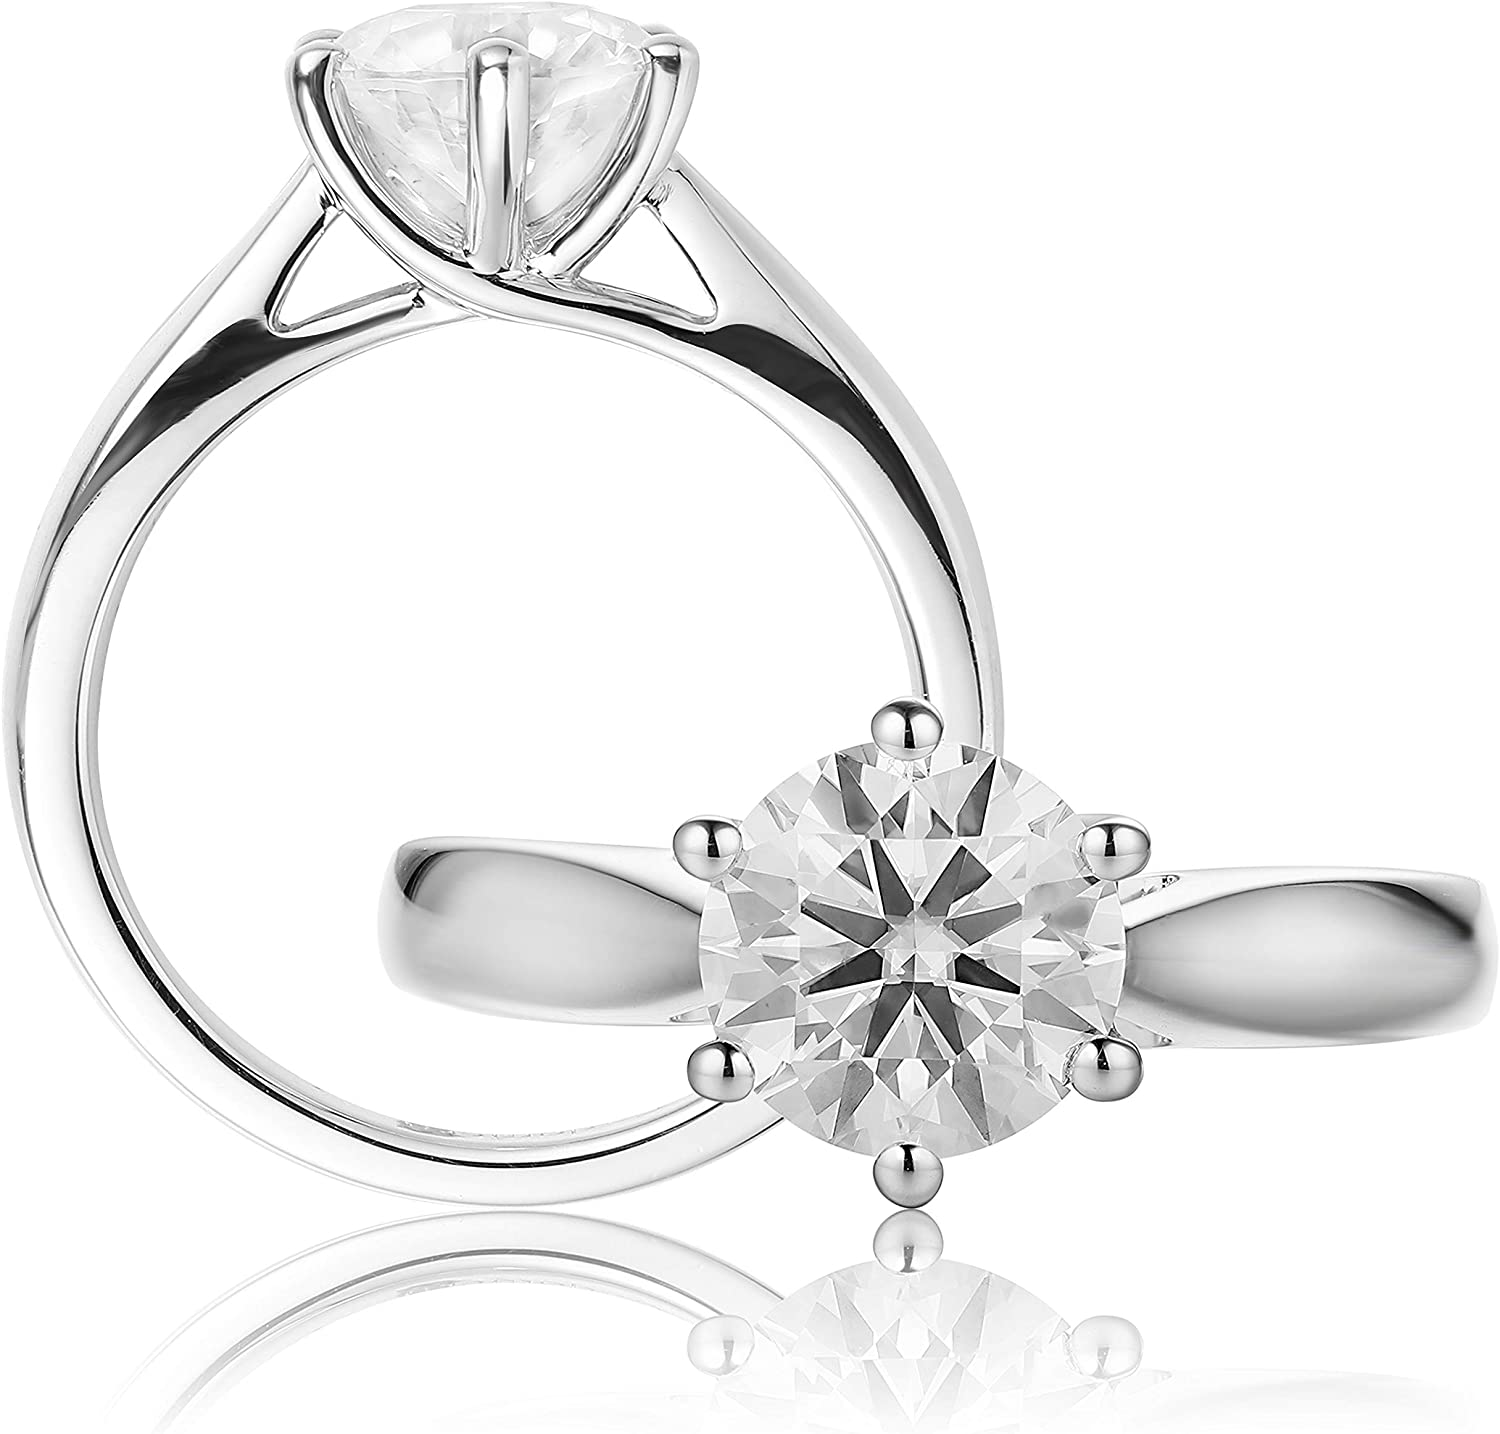 Esdomera Solitaire Popular shop is the lowest price challenge 6 Prongs 2.00ct 35% OFF 8mm Moissanite Wome Cut Round